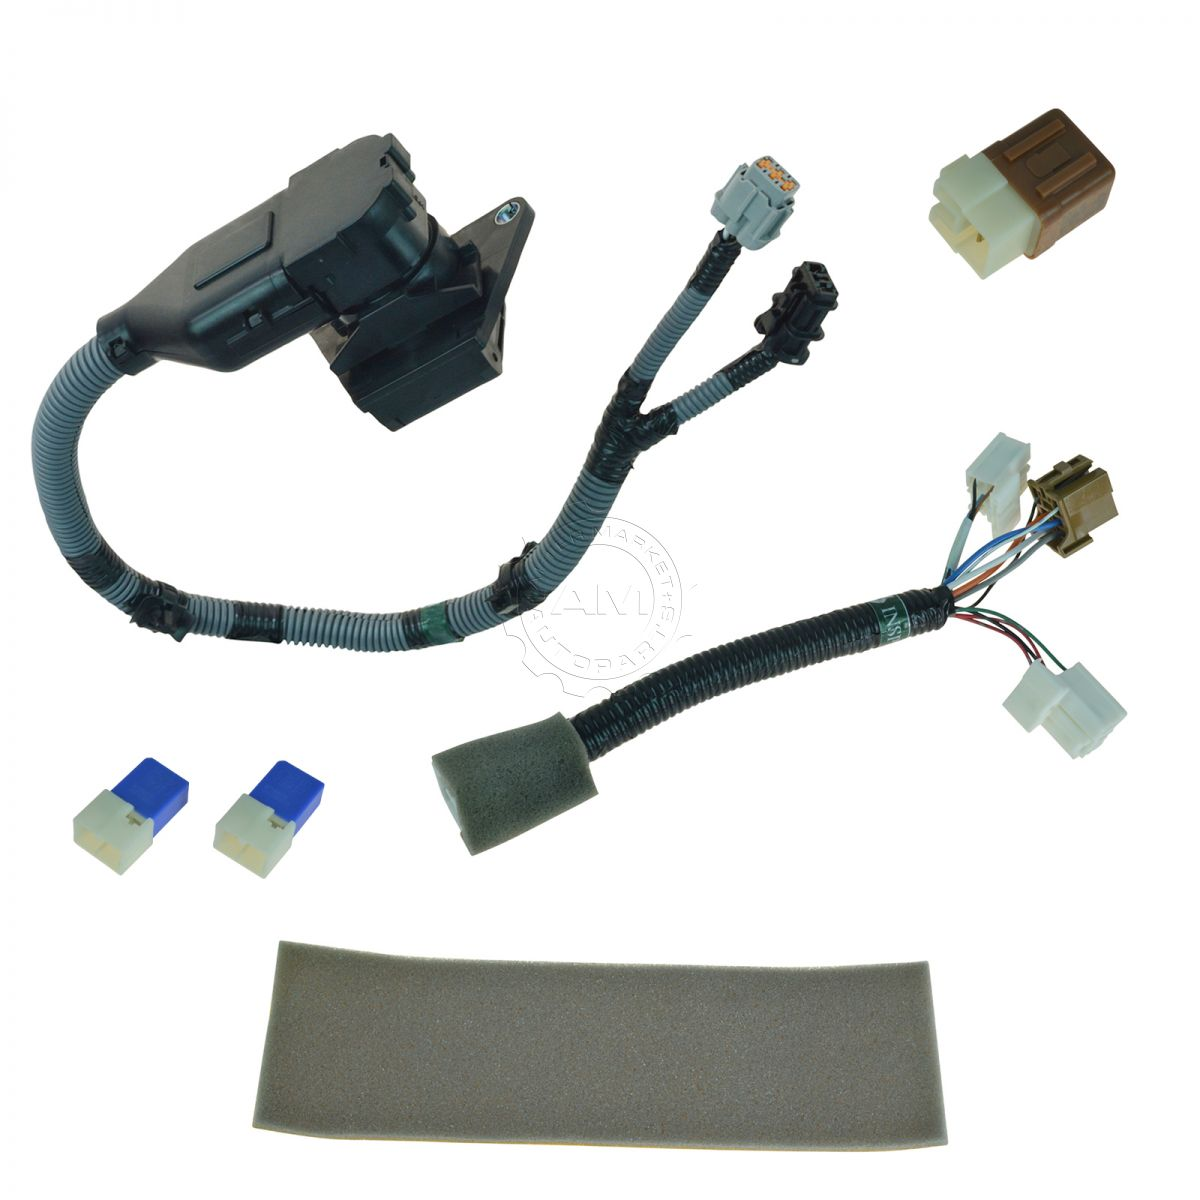 2005 nissan frontier trailer wiring diagram grain kernel oem 999t8br020 complete 7 pin plug and play tow harness kit